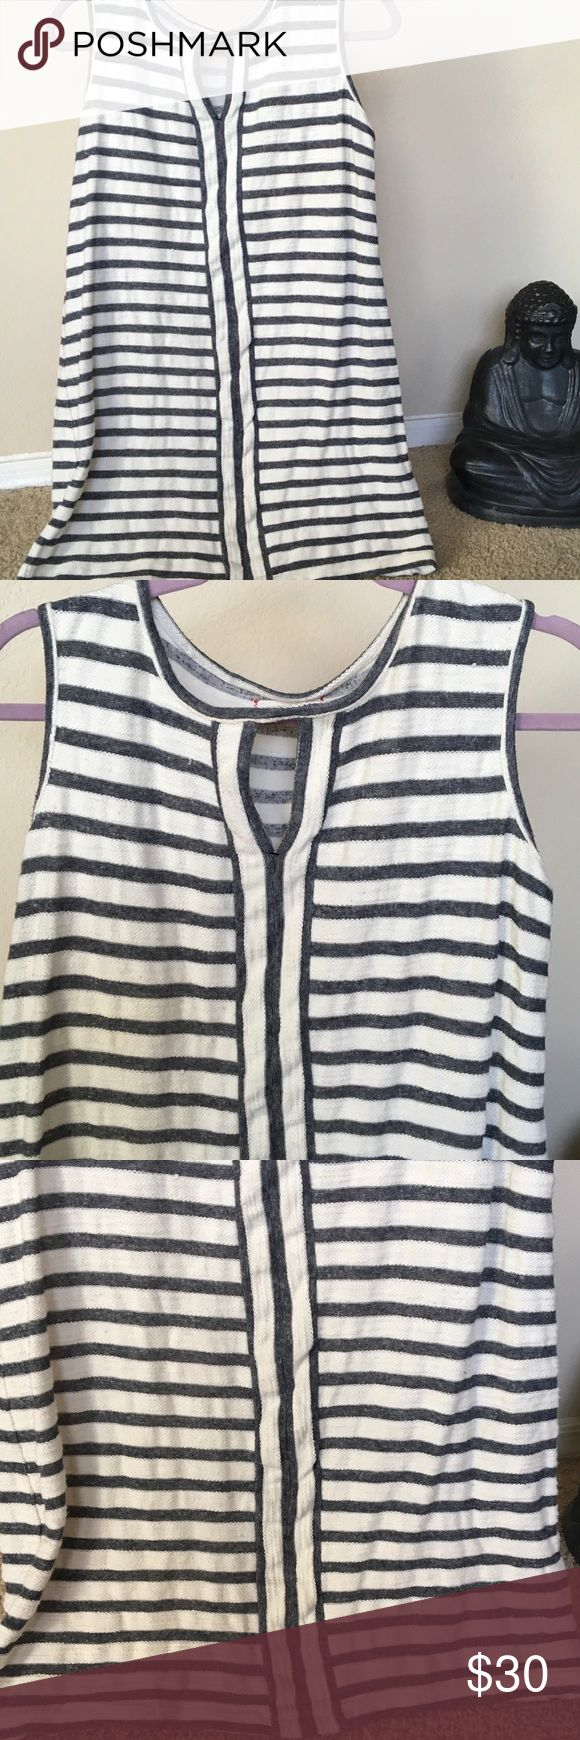 """MAX STUDIO Striped TUNIC TOP Denim grey white👀👀 Wonderful long Tunic for leggings, skinny jeans, bathing suit coverup. Anytime anywhere .Machine washable cotton Poly Blend. Denim grey stripes w white..... see measurments....20 1/2"""" UA-UA.....31 1/8"""" T-B MAX STUDIO WEEKEND💄💄💄 MAX STUDIO weekend Tops Tunics"""